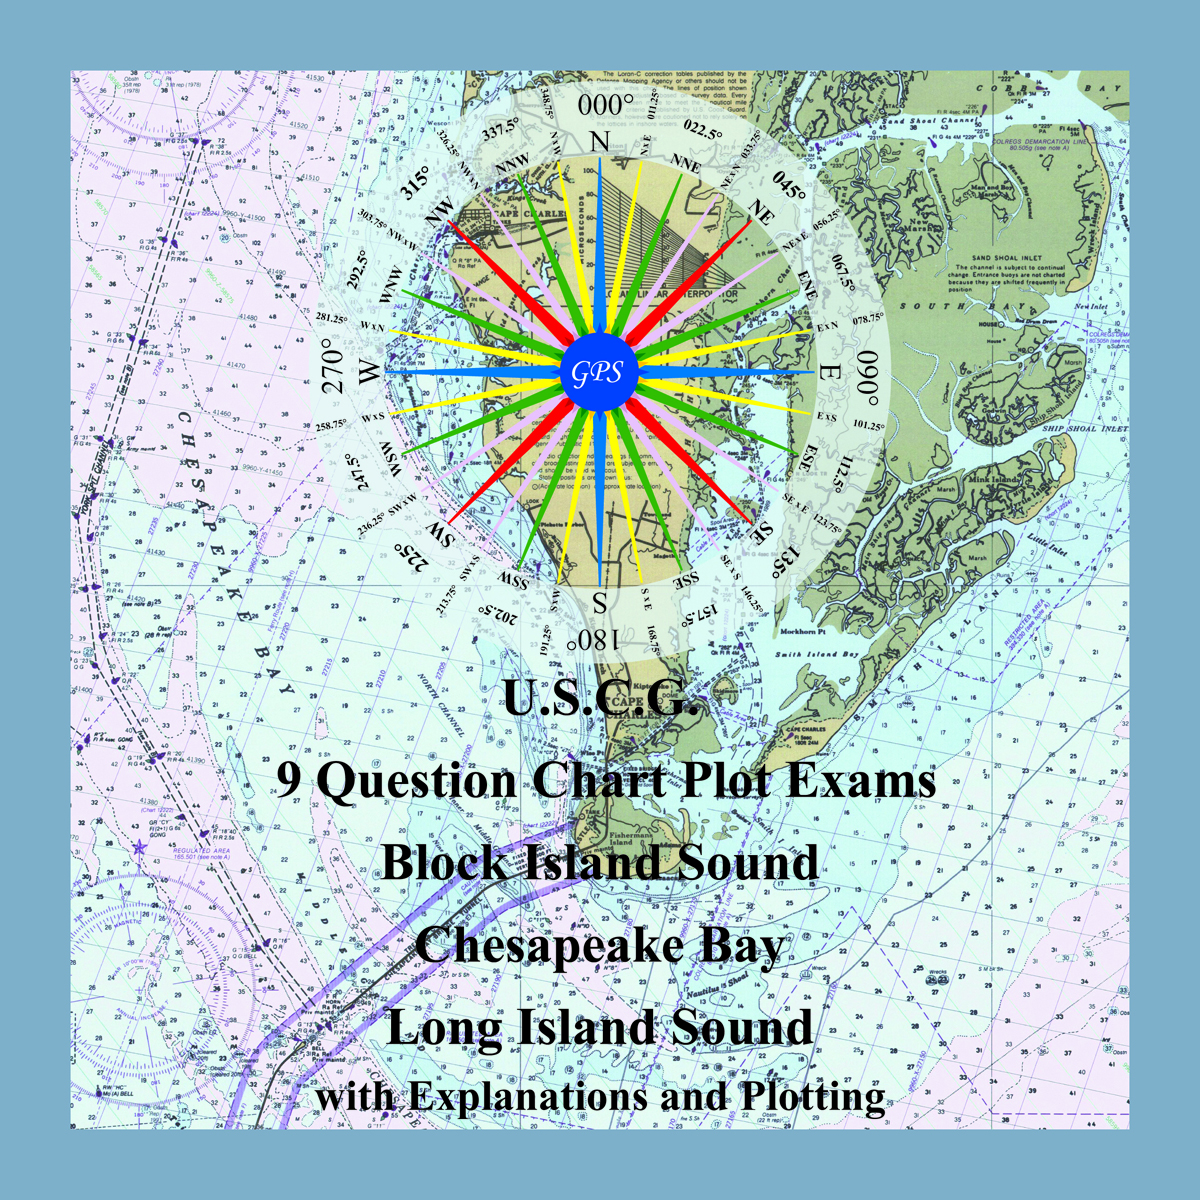 9 Question Chart Plot Exams